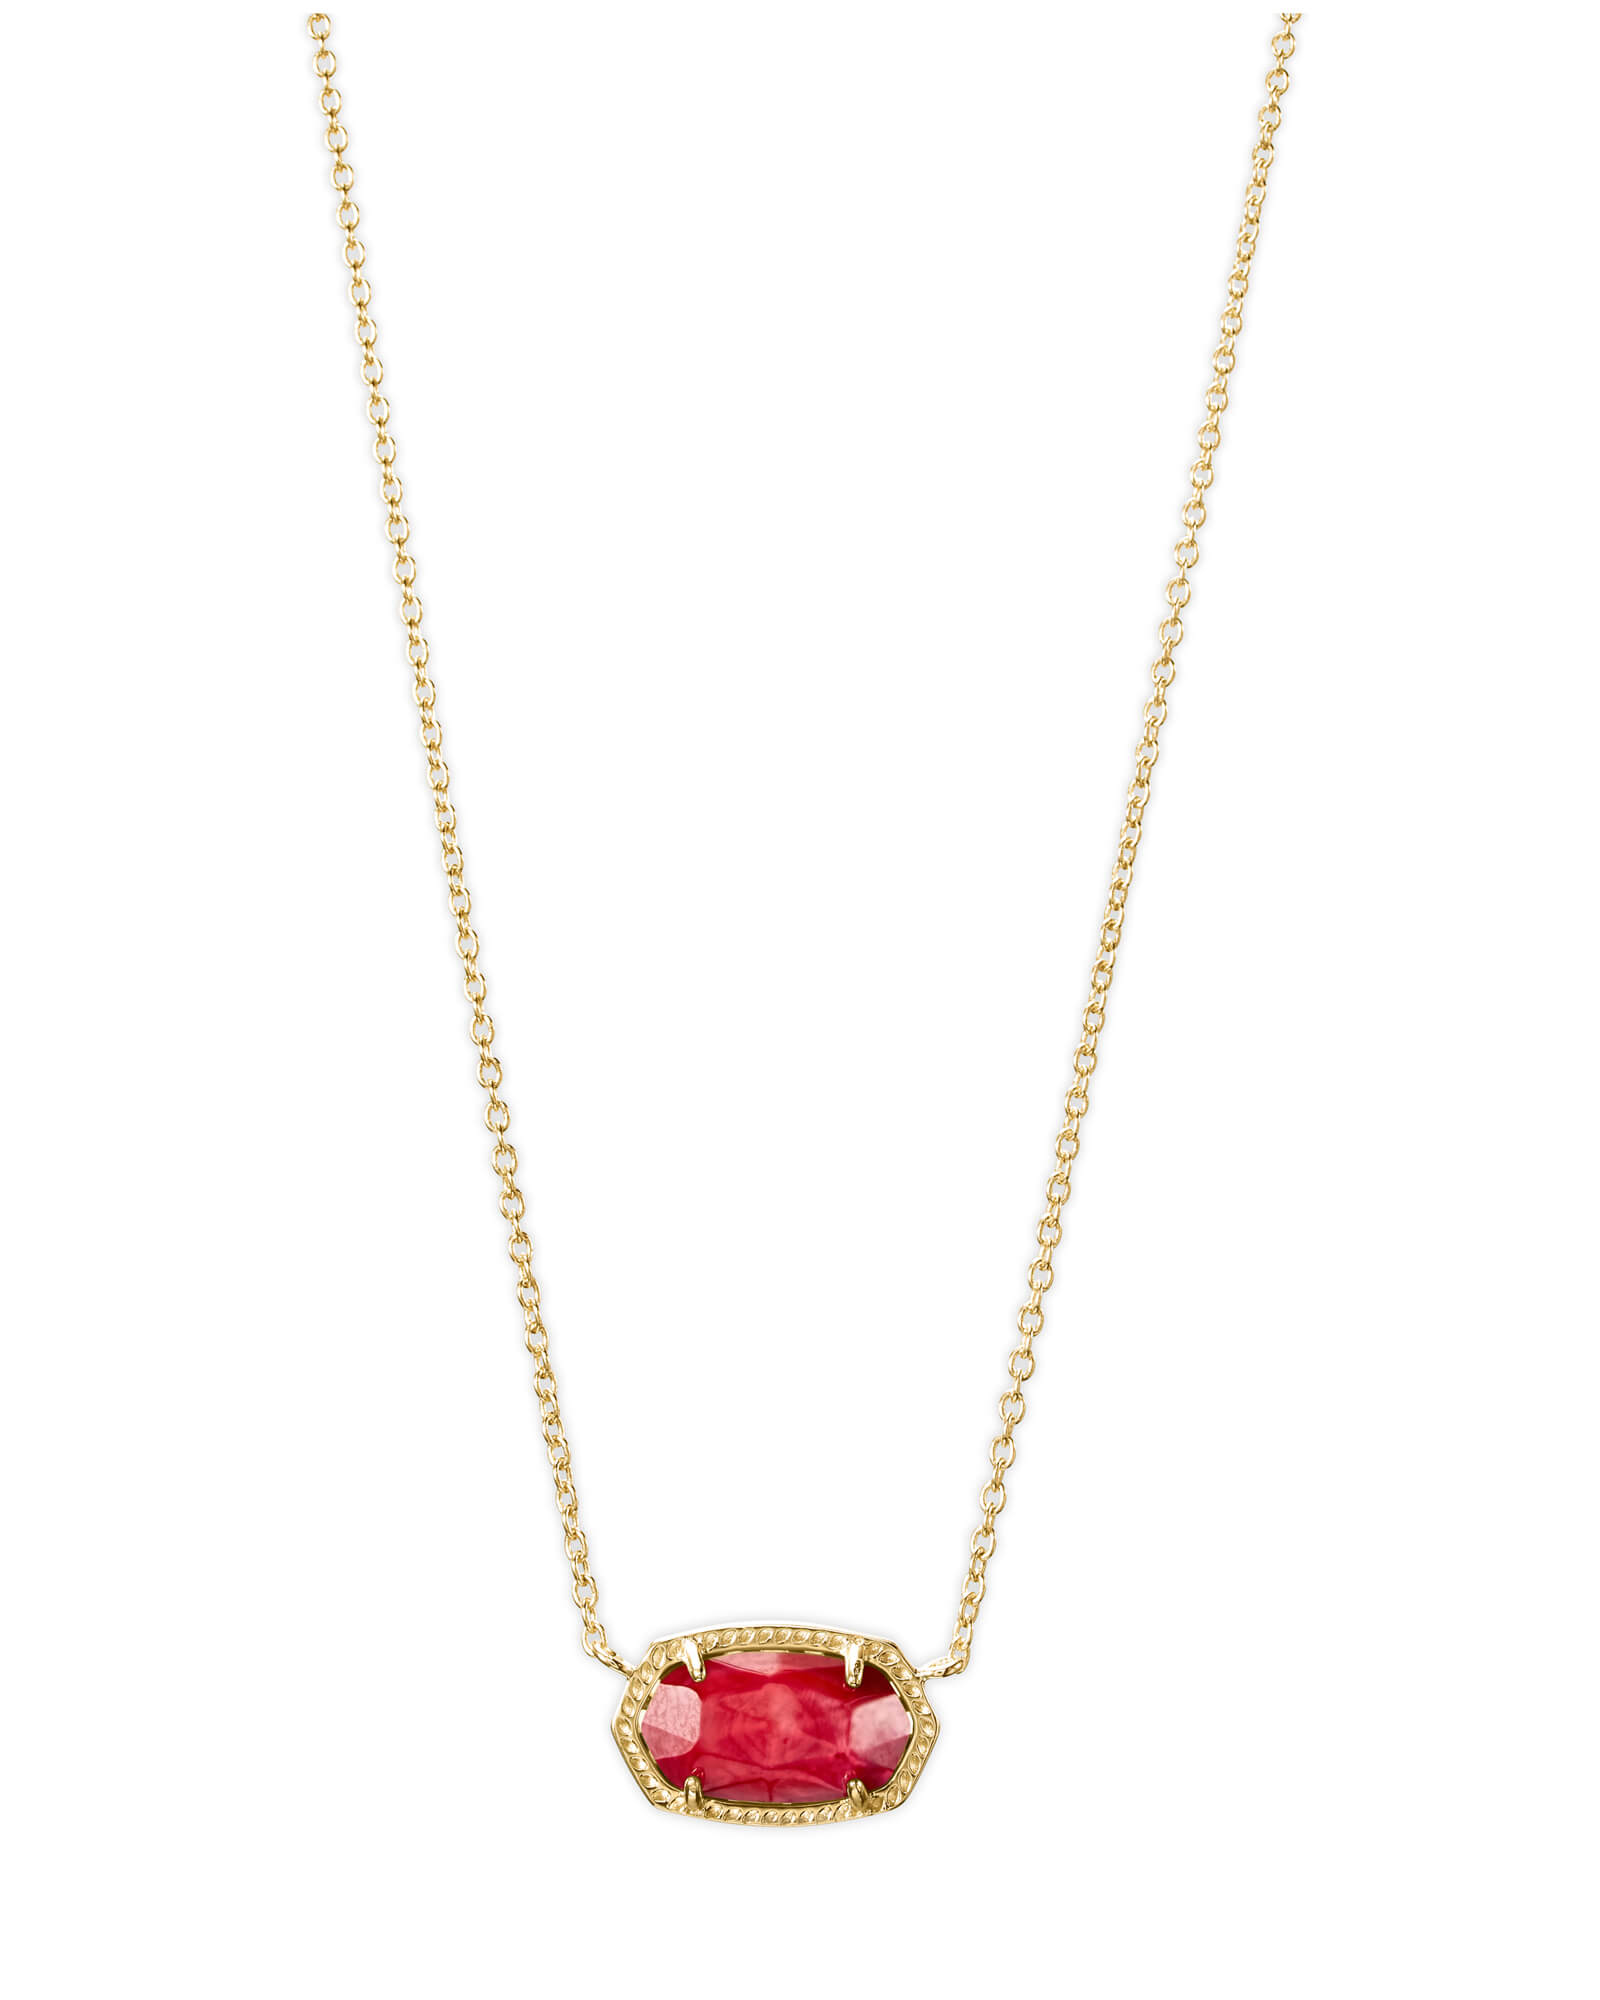 Elisa Gold Pendant Necklace in Red Mother of Pearl